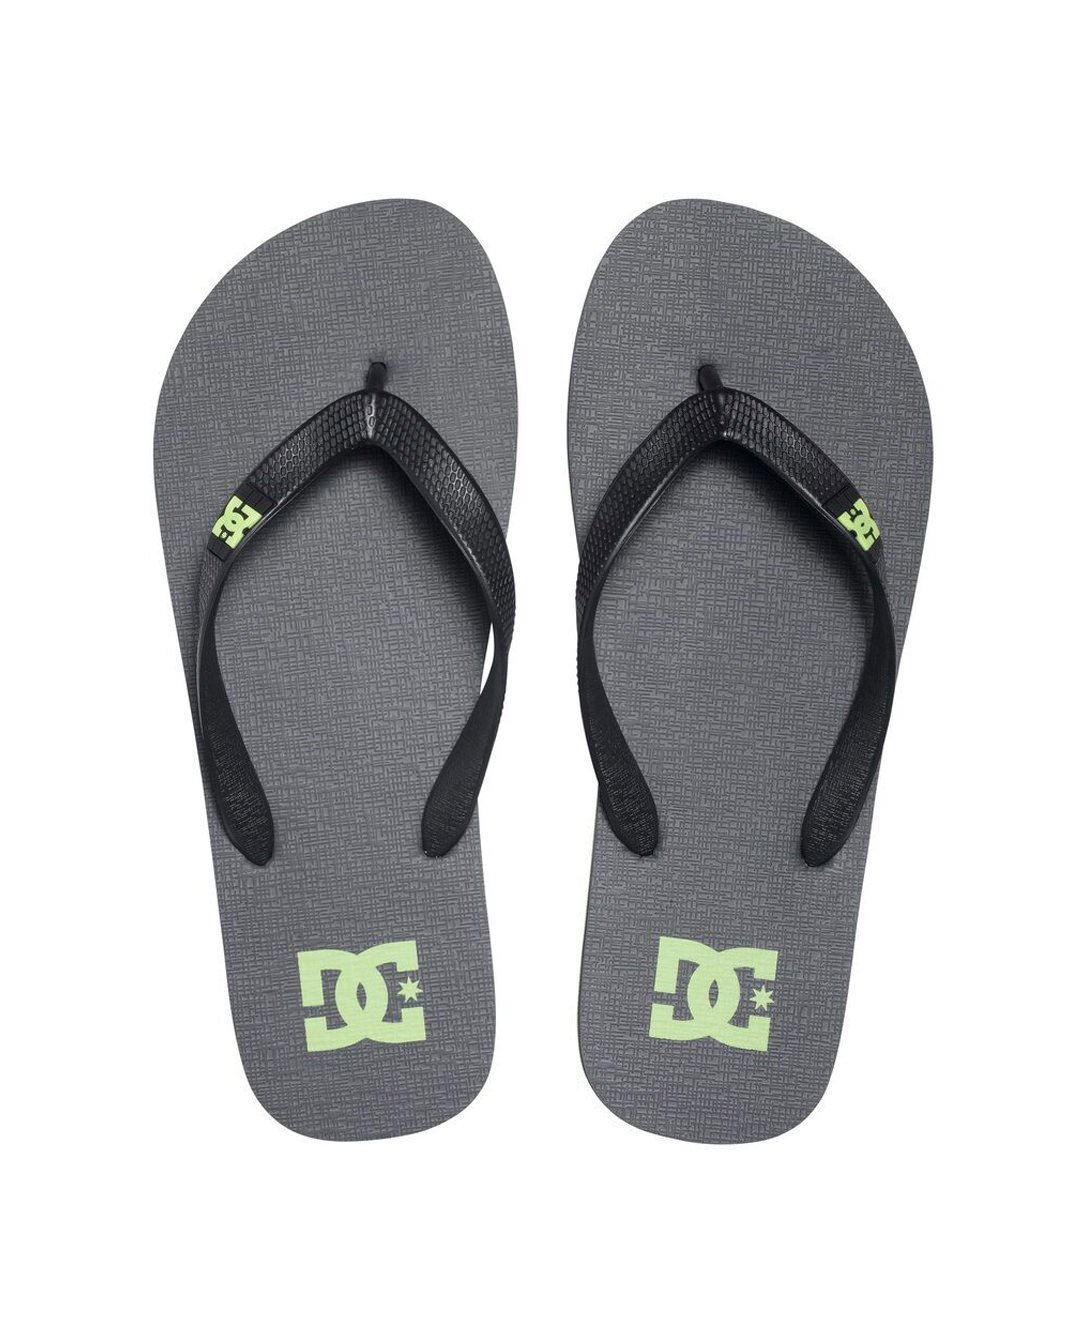 DC SHOES INFRADITO SPRAY - LM BOARD STORE